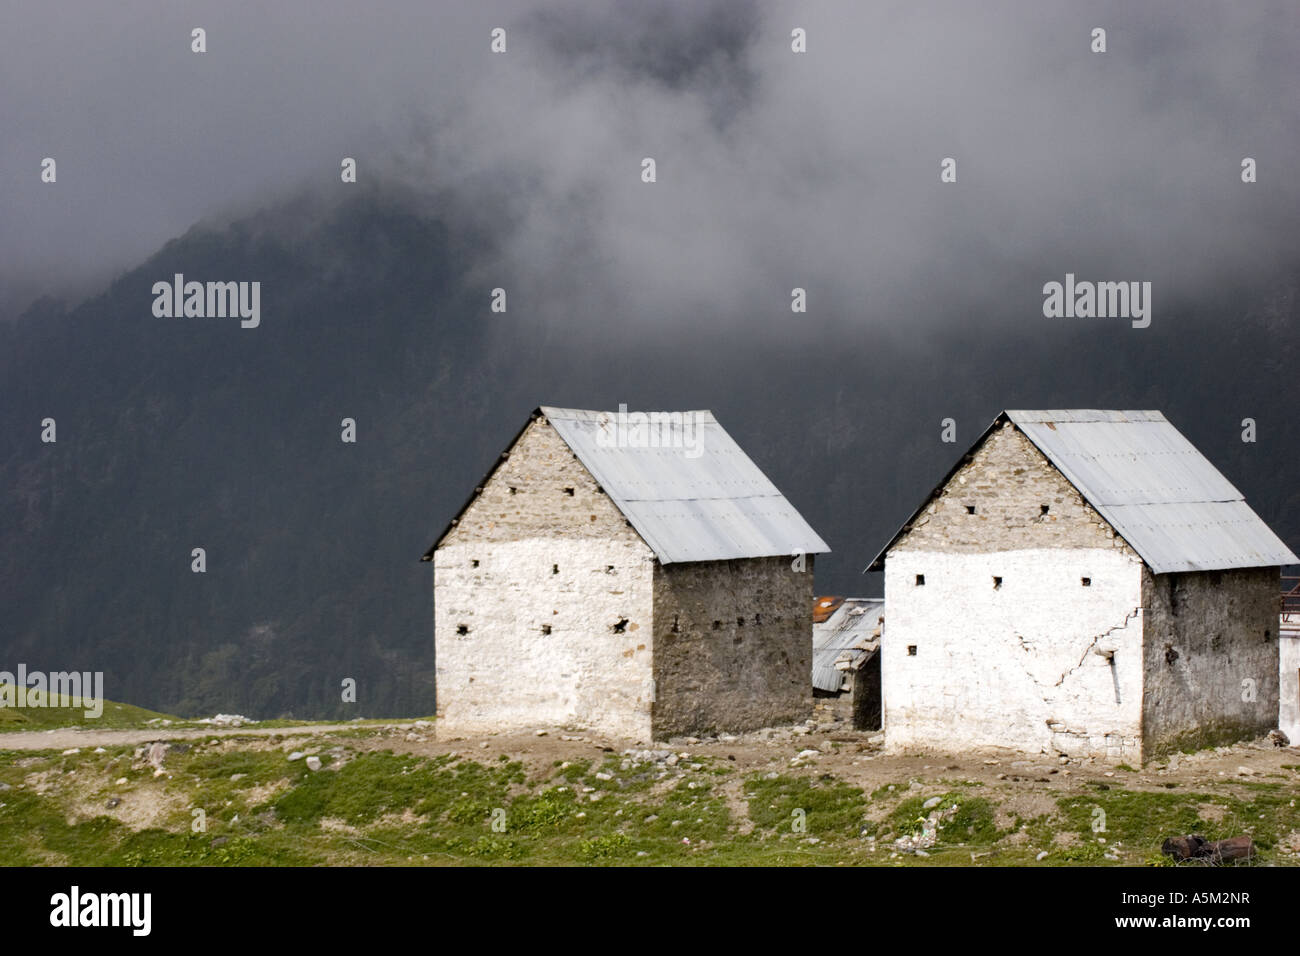 Two stone houses near Keylong in the Himalayan region of Ladakh. - Stock Image